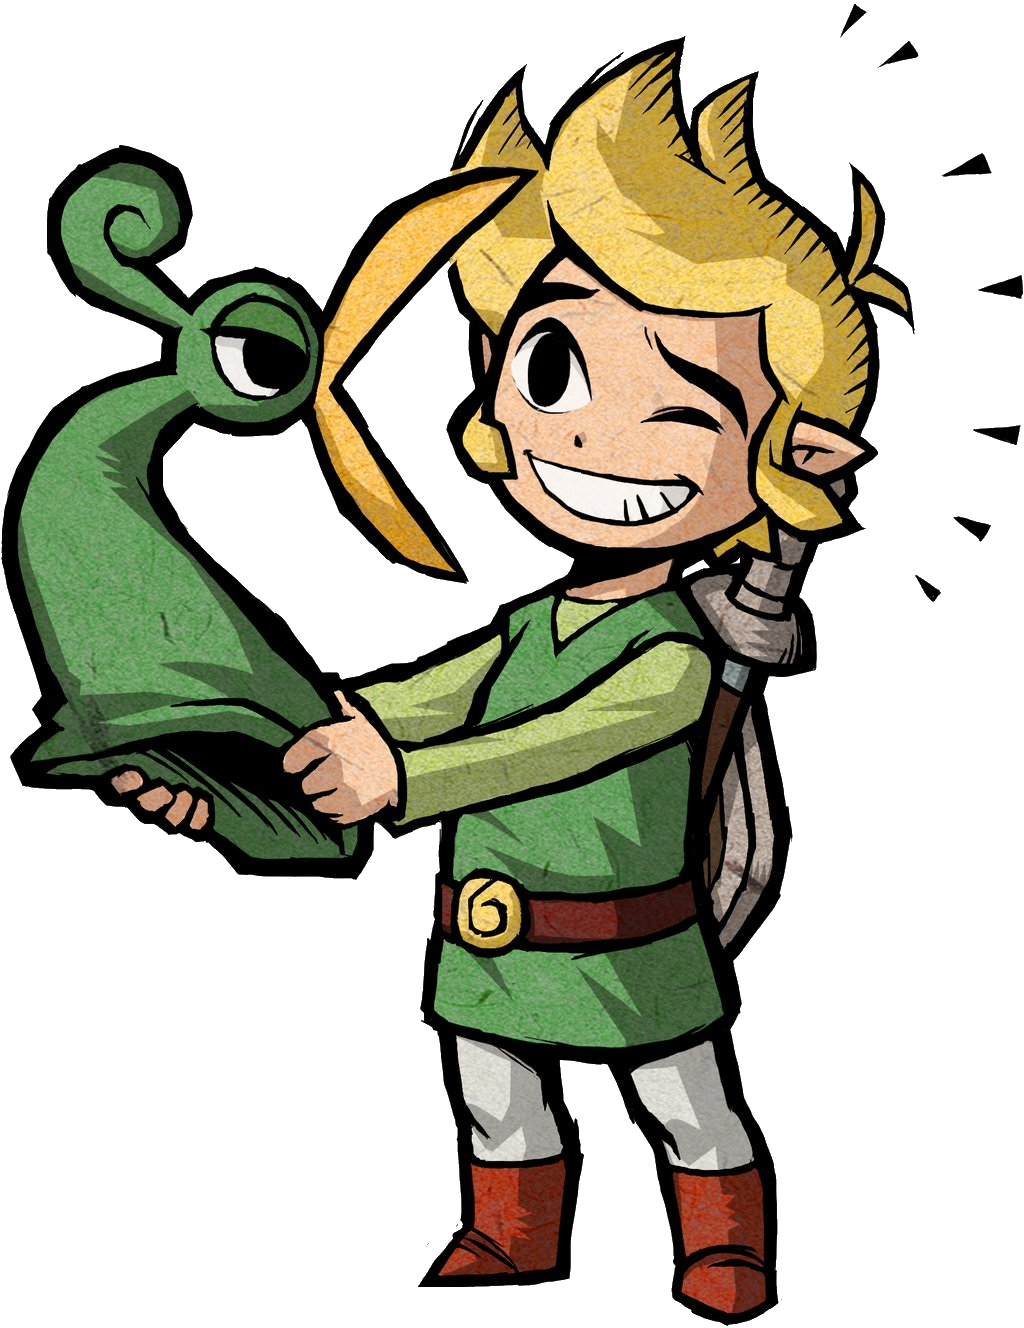 Link_Artwork_1_(The_Minish_Cap).png